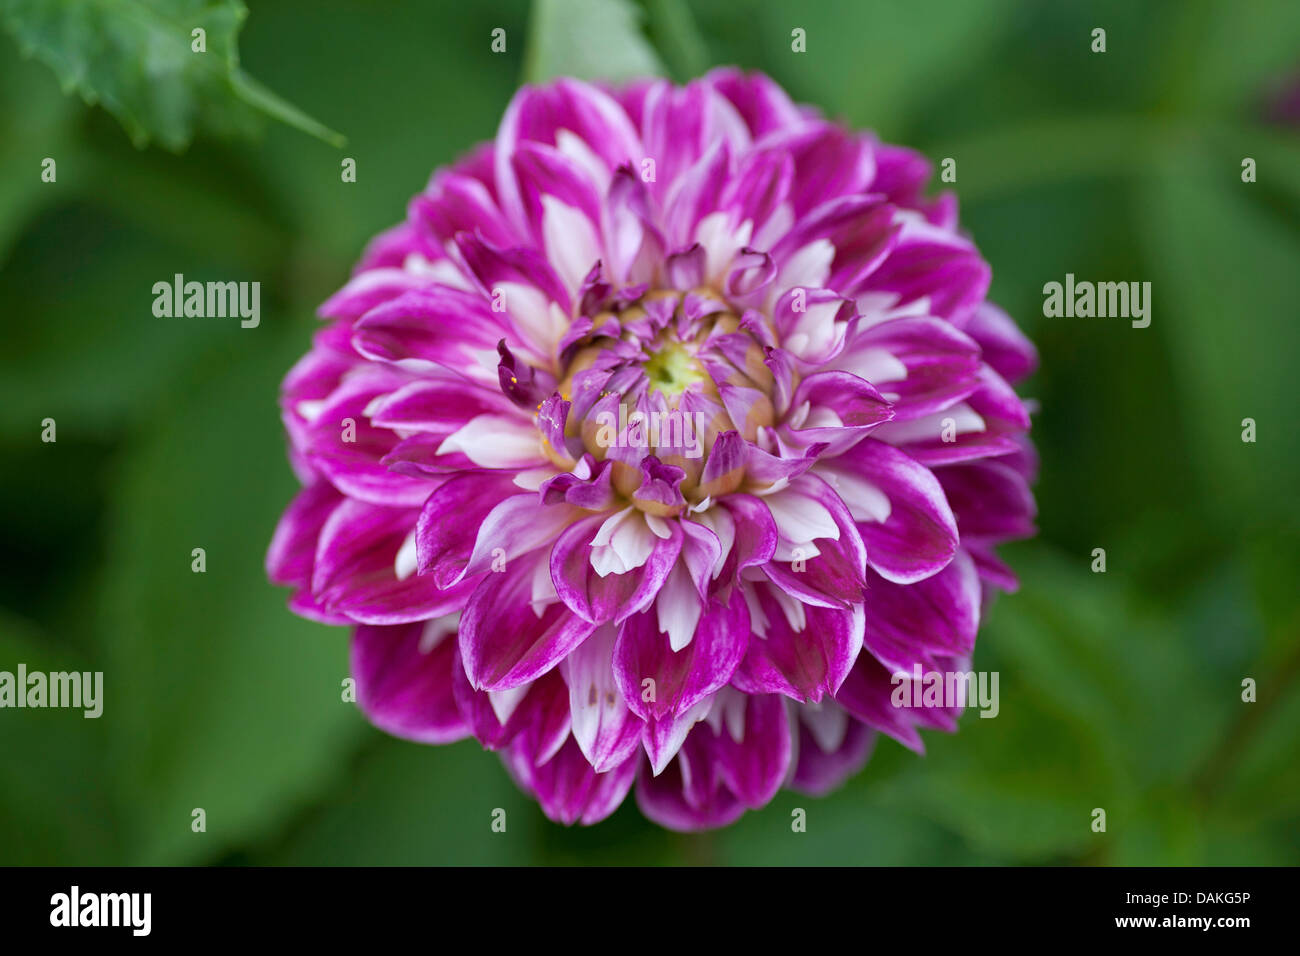 georgina (Dahlia 'Optic Illusion', Dahlia Optic Illusion), cultivar Optic Illusion - Stock Image